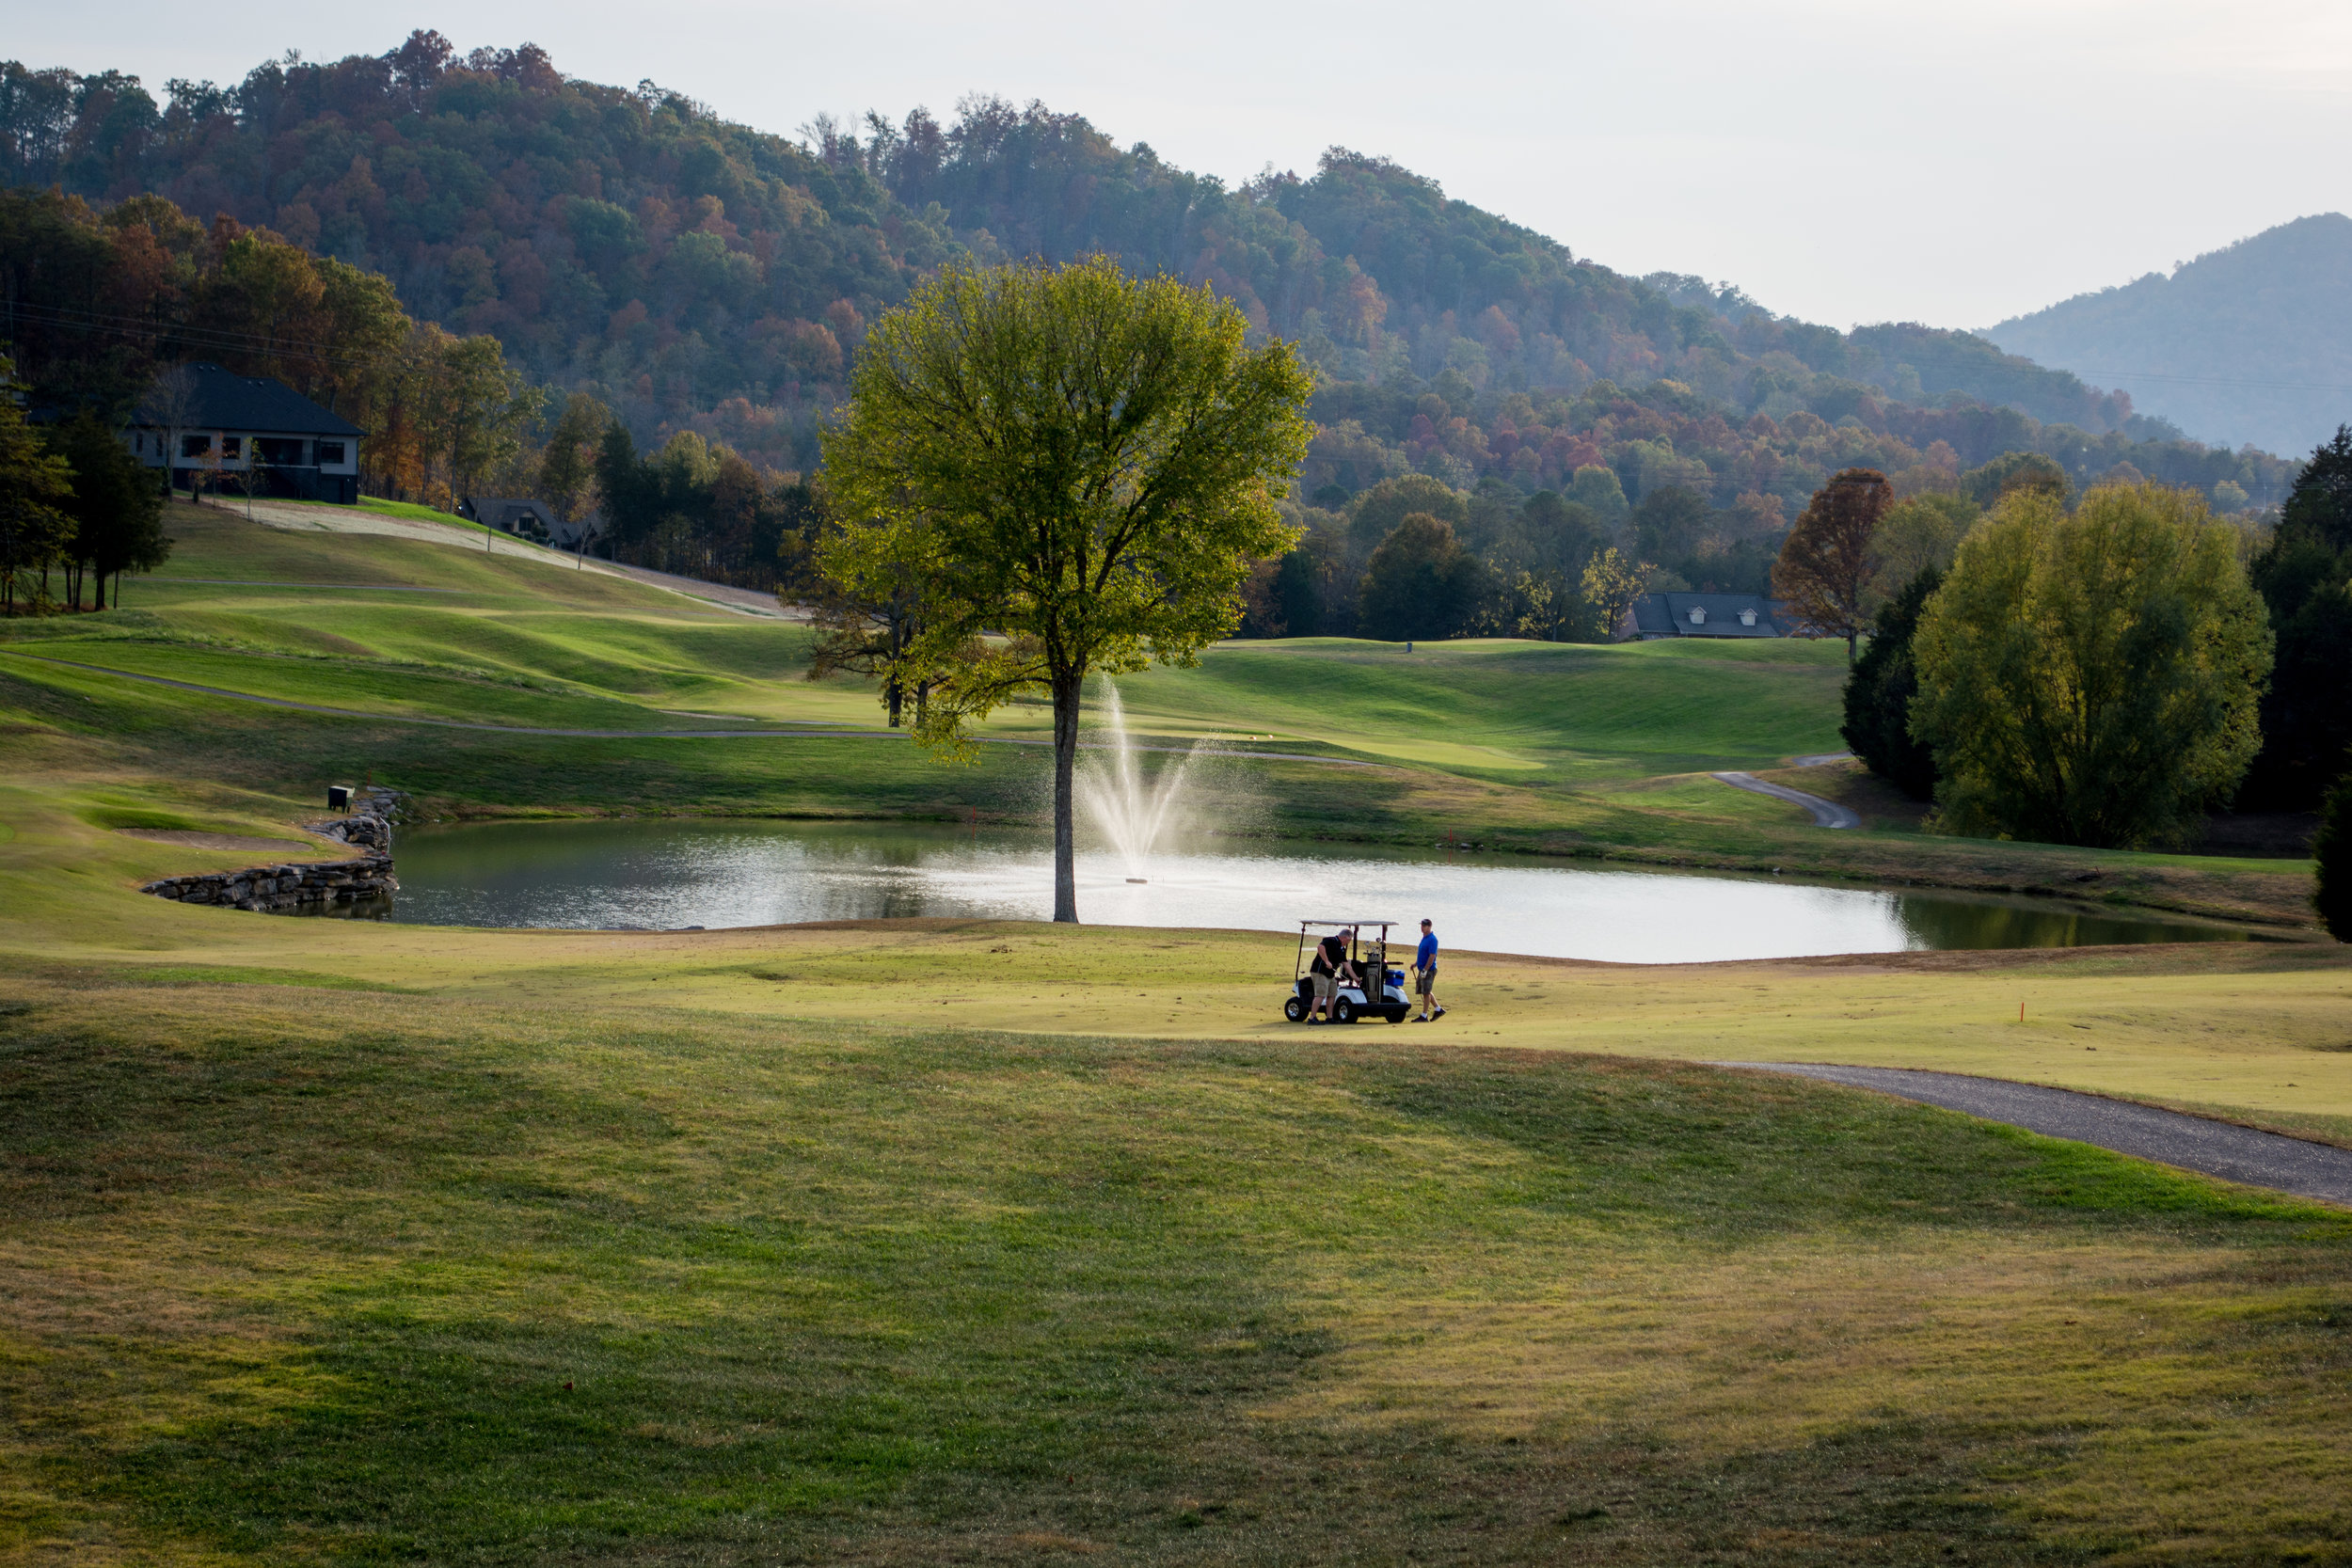 Even if golf isn't your thing,  there's plenty of allure in the lush views in the community surrounding Woodlake Lodge, Golf & Country Club. Photo by Daniel and Shannon Hill